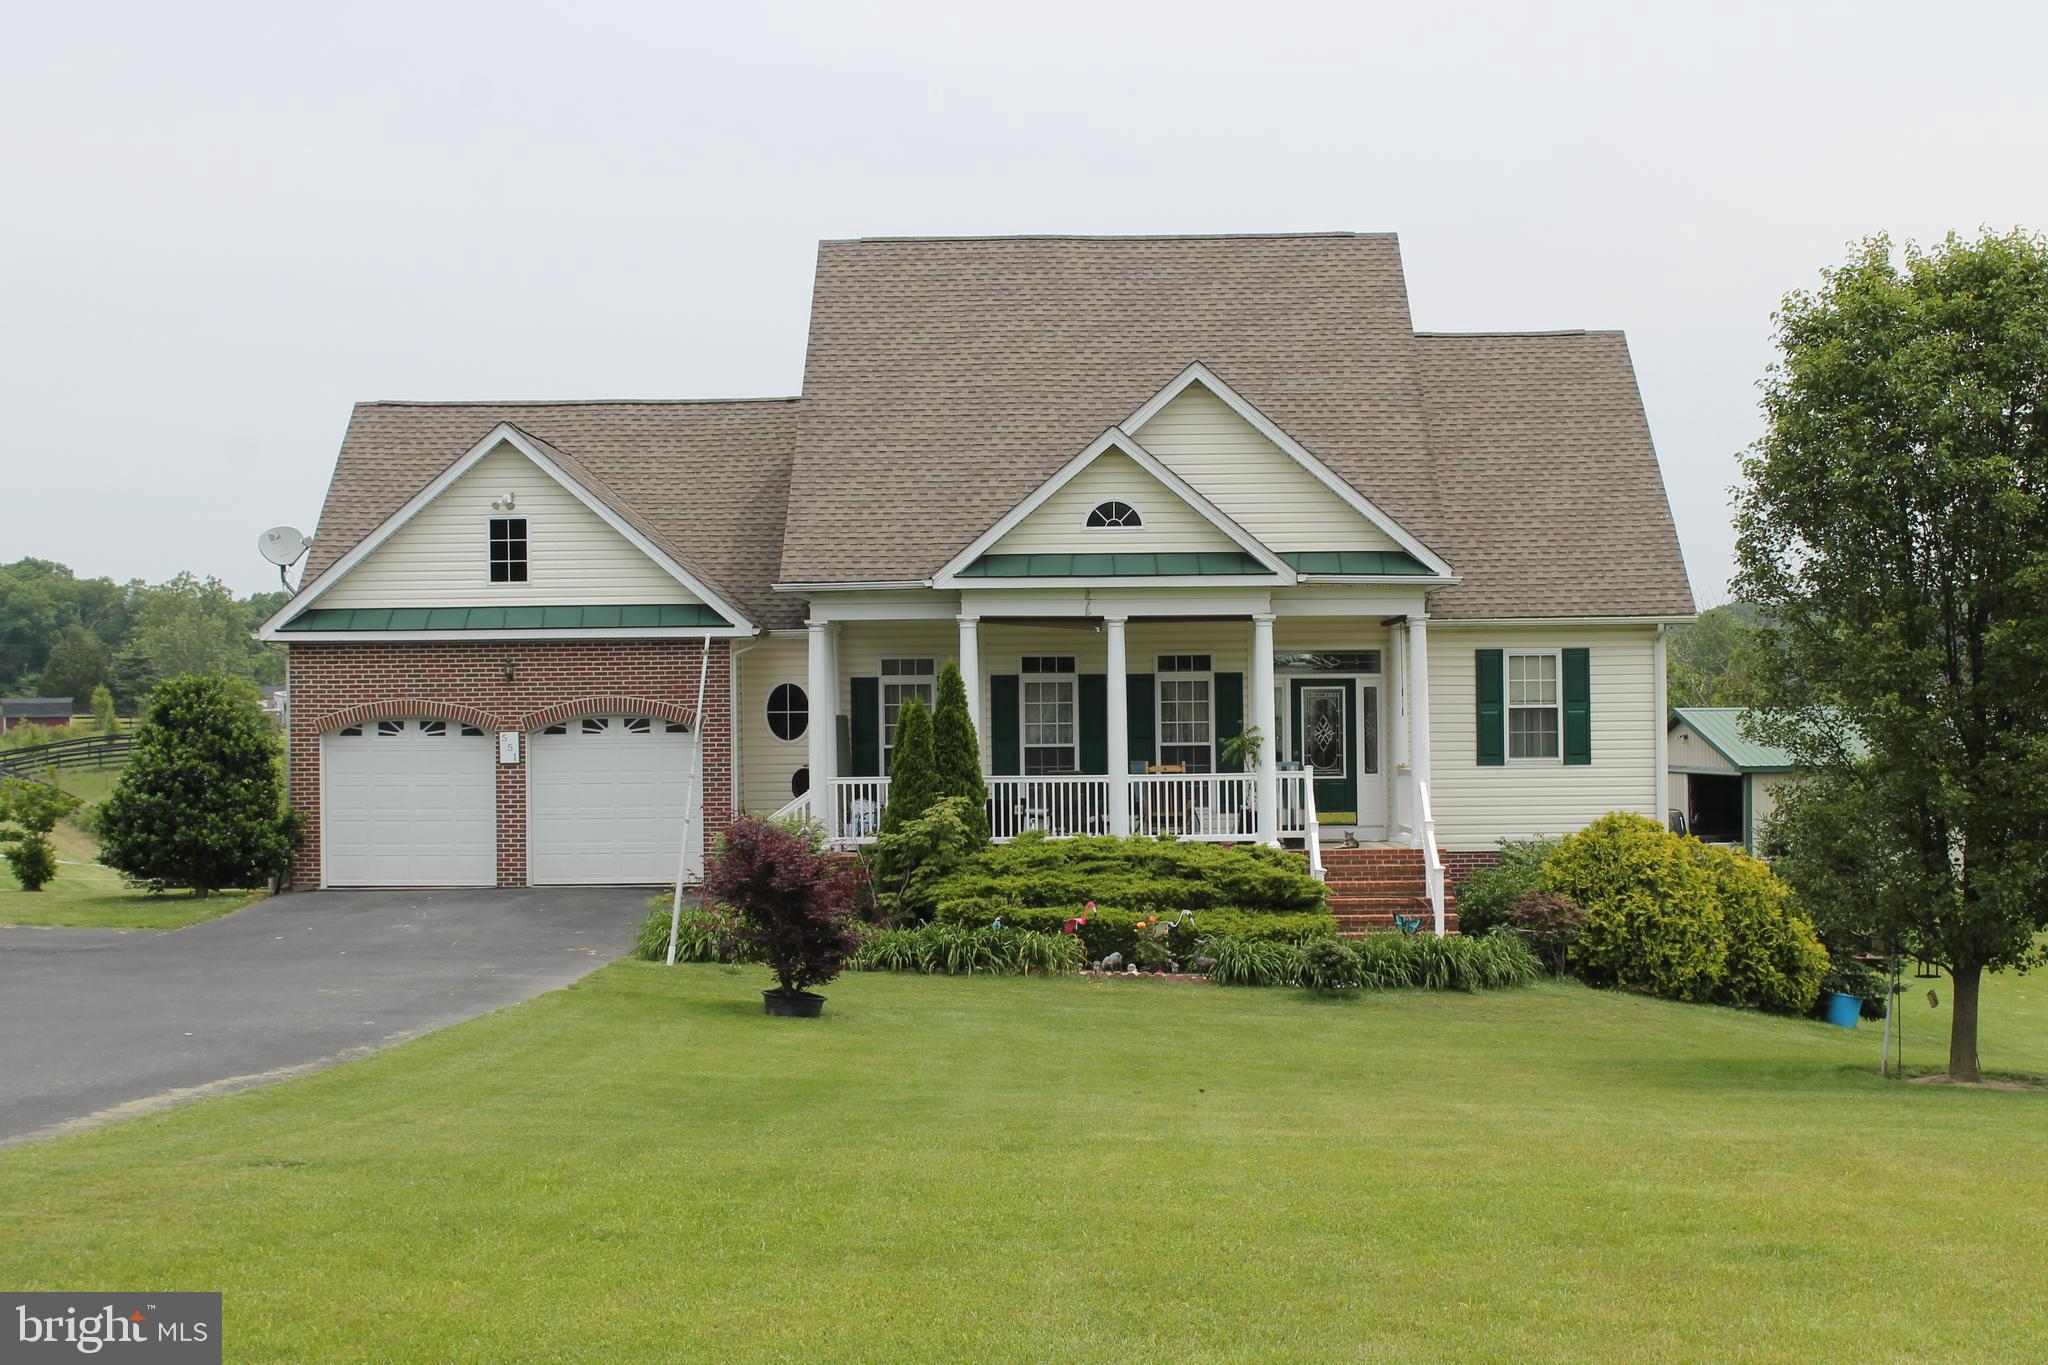 551 N BUCKTON ROAD, MIDDLETOWN, VA 22645